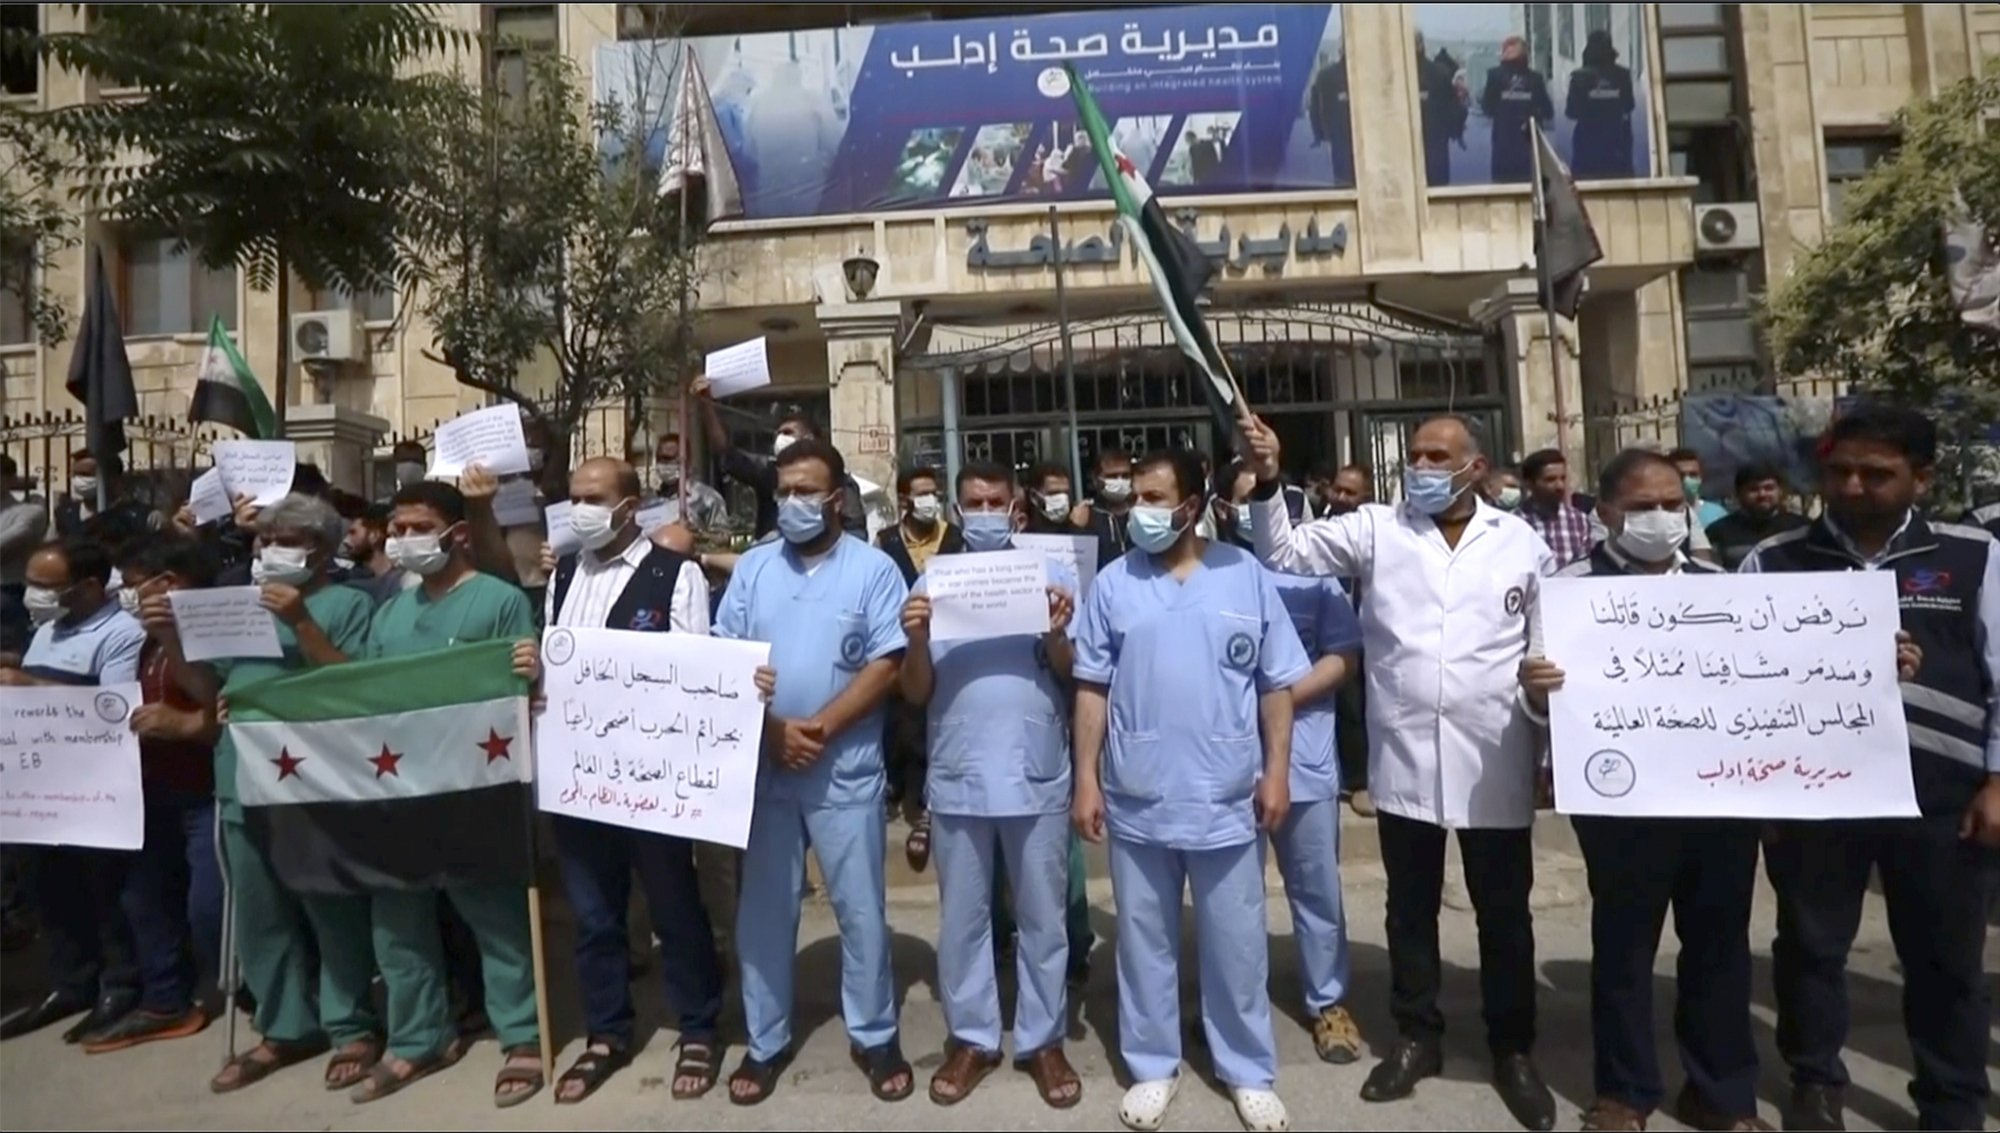 Medical workers protest a decision to grant the Syrian regime a seat on the executive board of the World Health Organization (WHO), Idlib, northwestern Syria, May 31, 2021. (AP Photo)